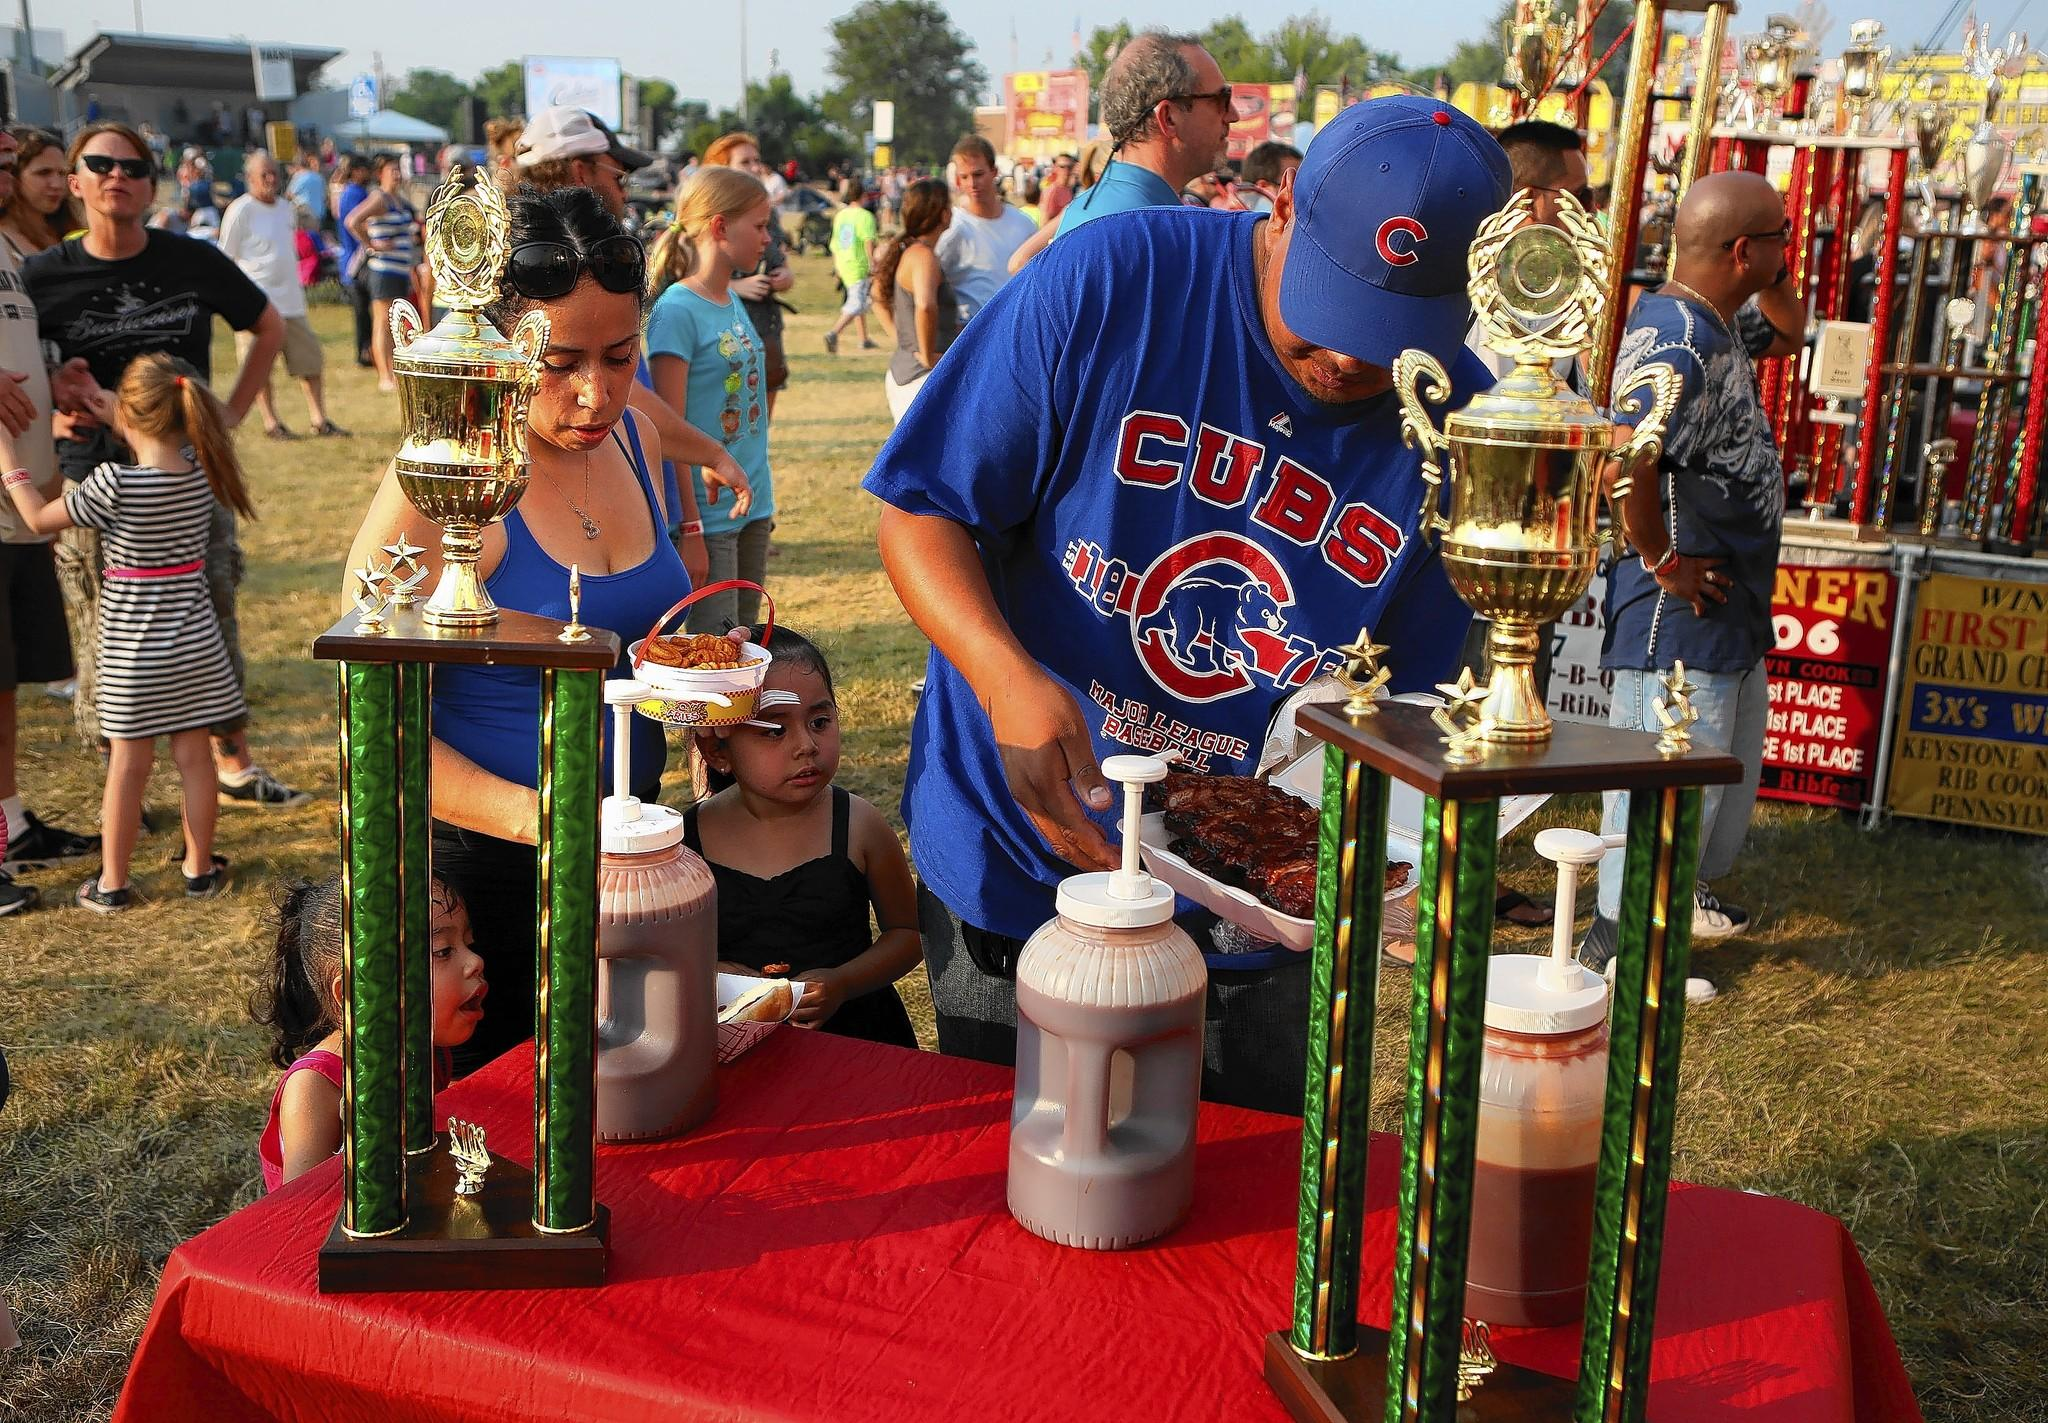 Ribfest organizers are adding a Mexican food vendor and a day of Latin entertainment to appeal to more people as the suburbs grow more diverse.